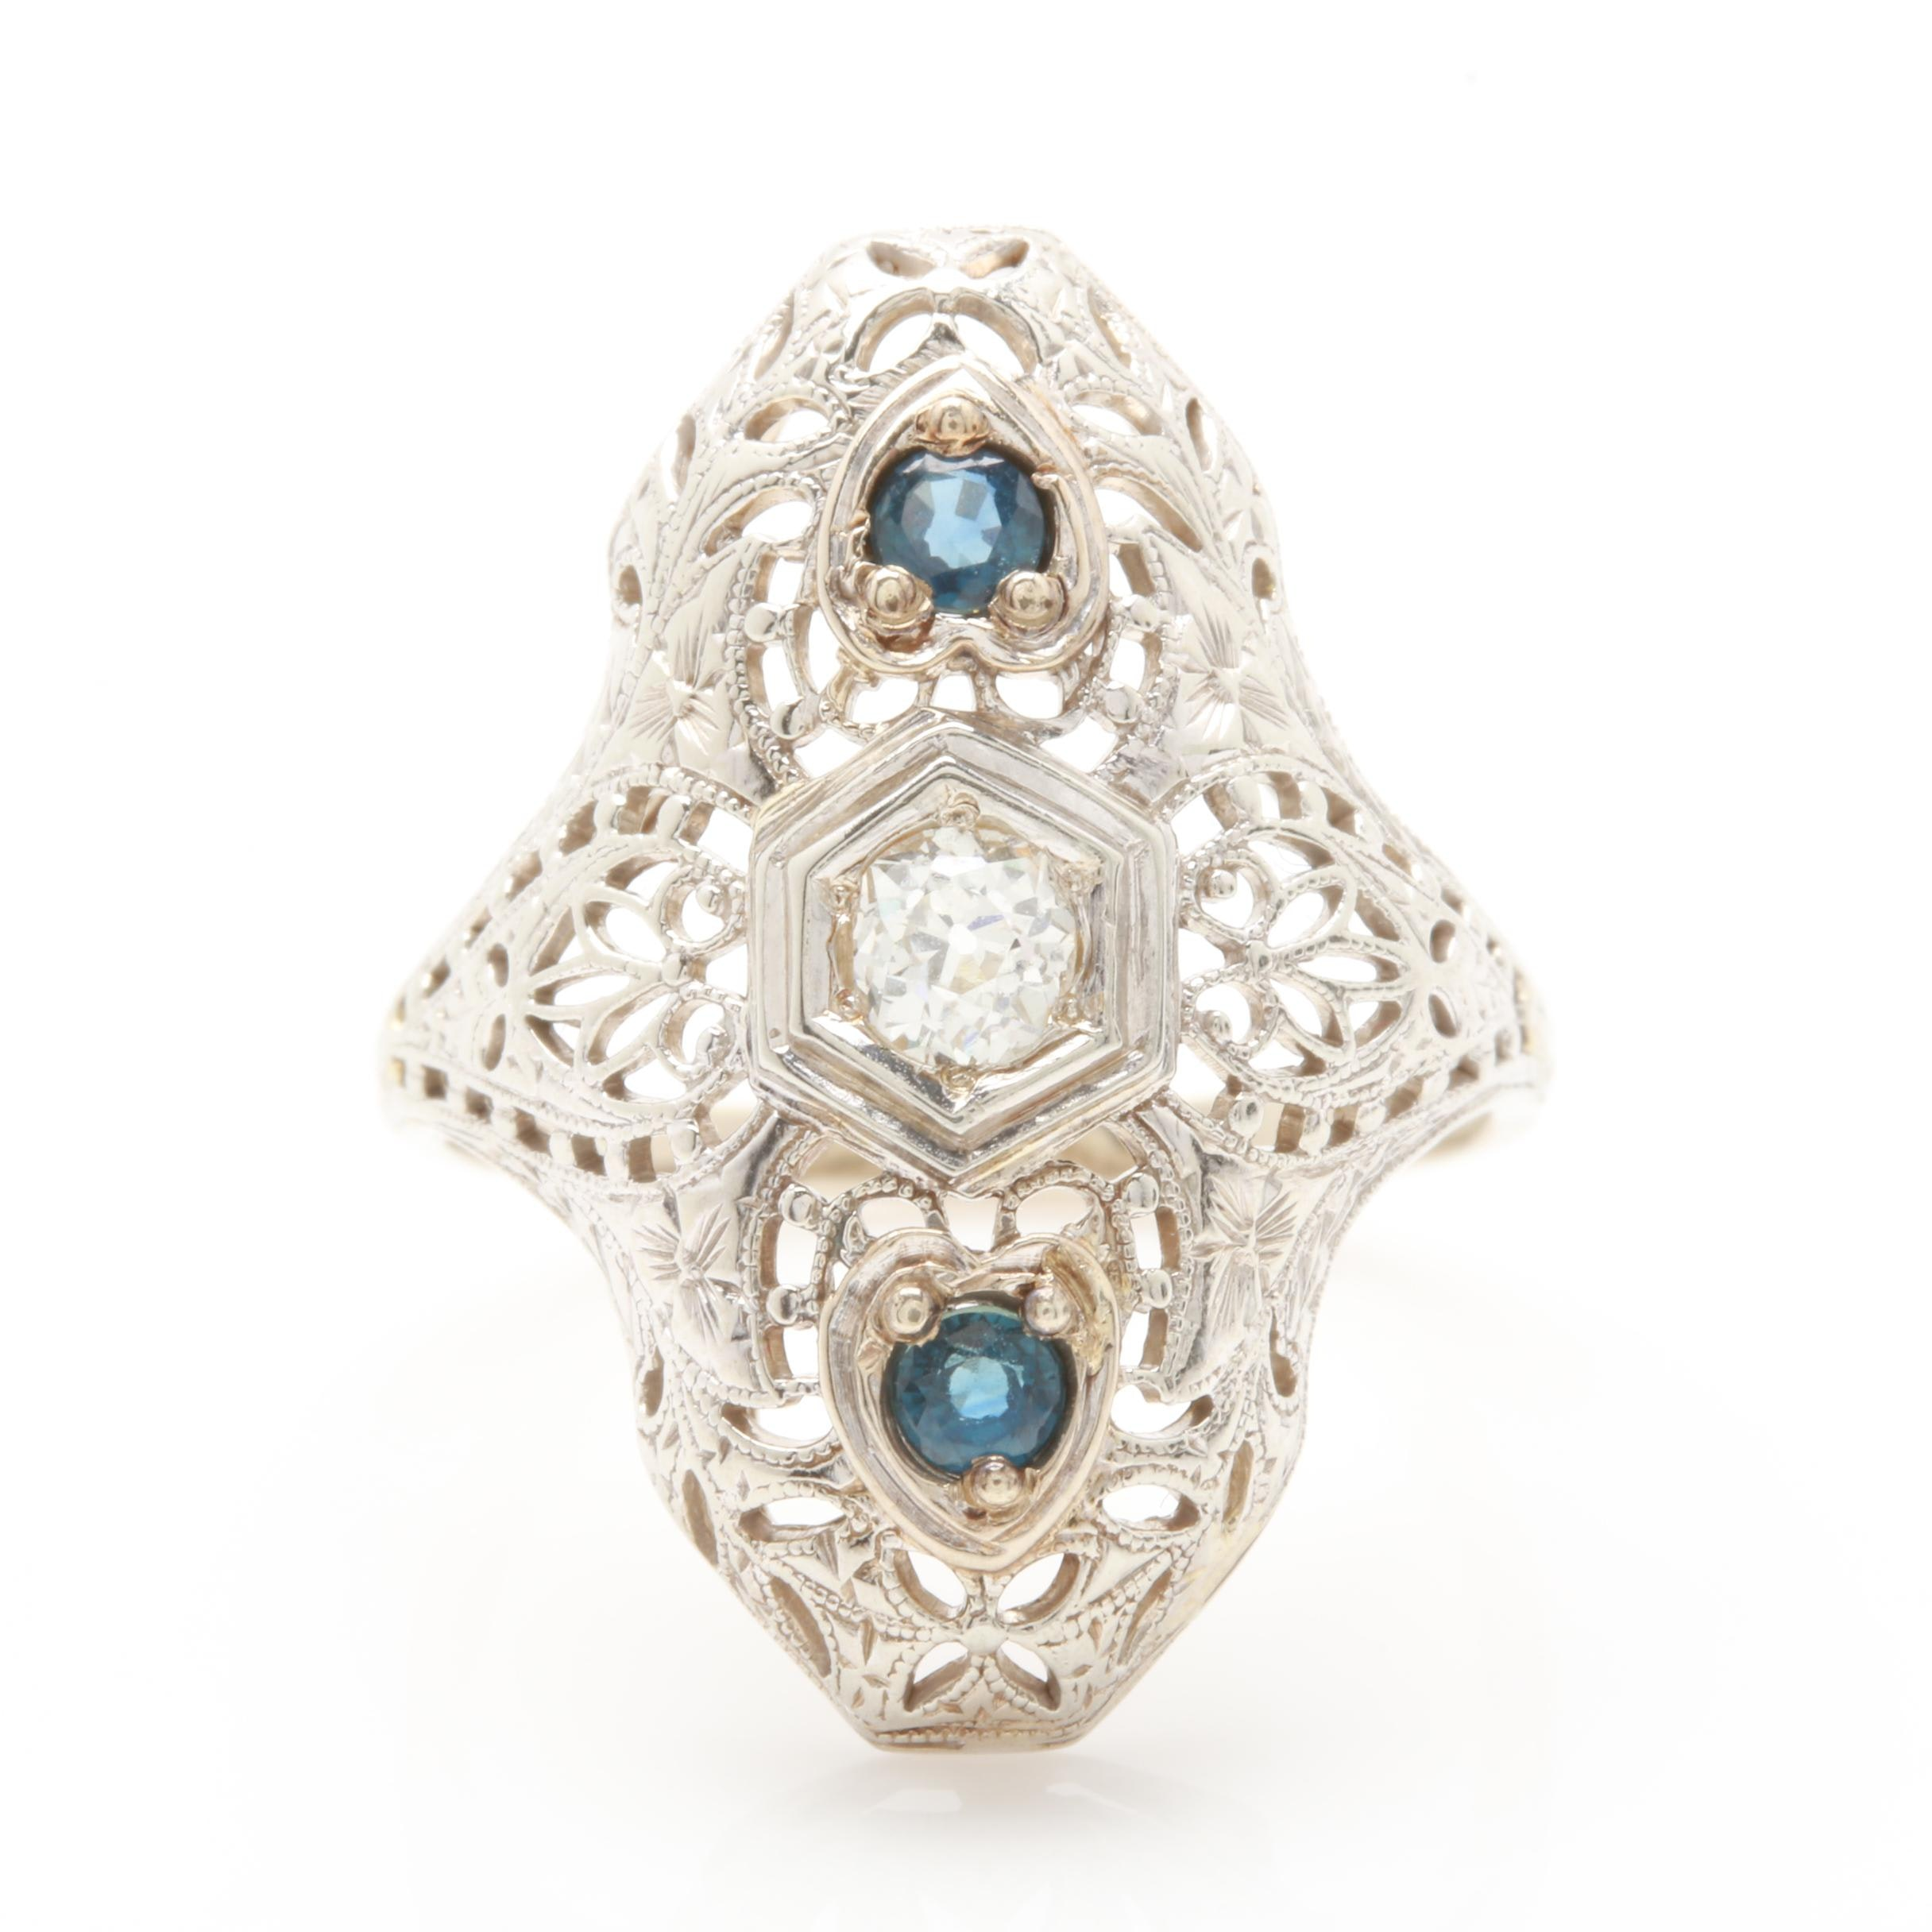 Edwardian 14K and 18K White Gold Diamond and Blue Sapphire Ring